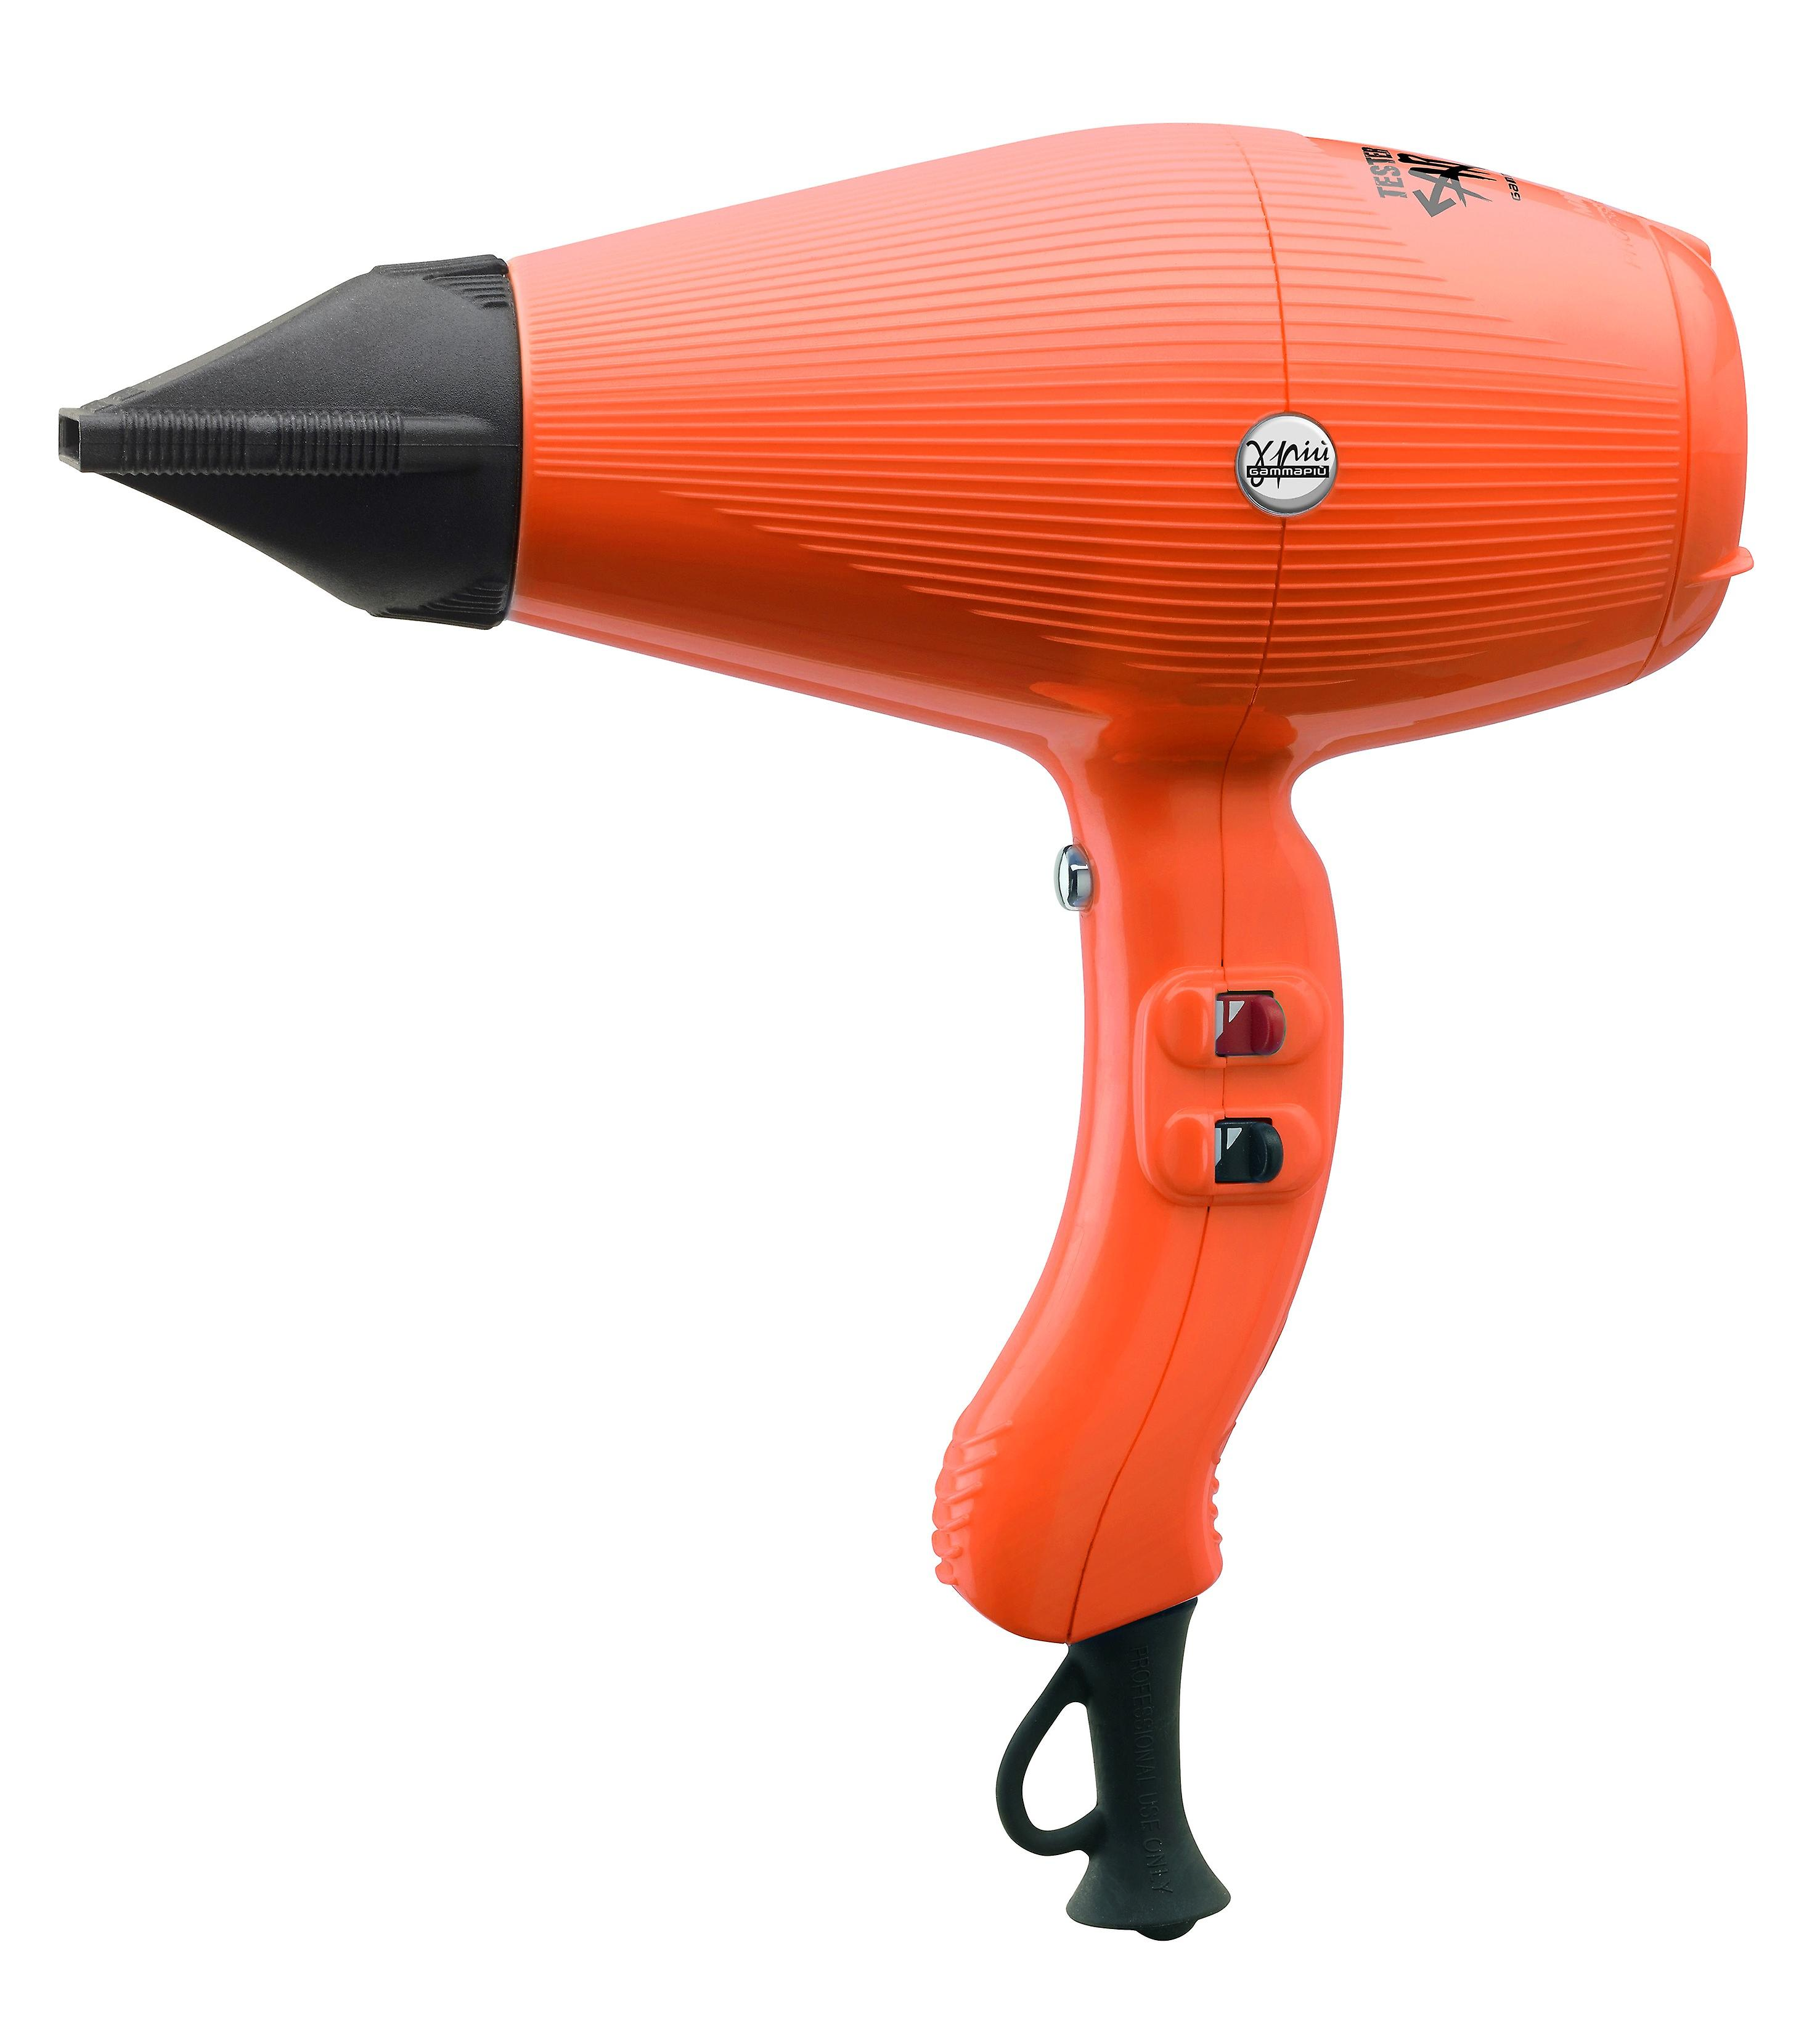 Gamma Piu Aria Hair Hairdryer - Orange